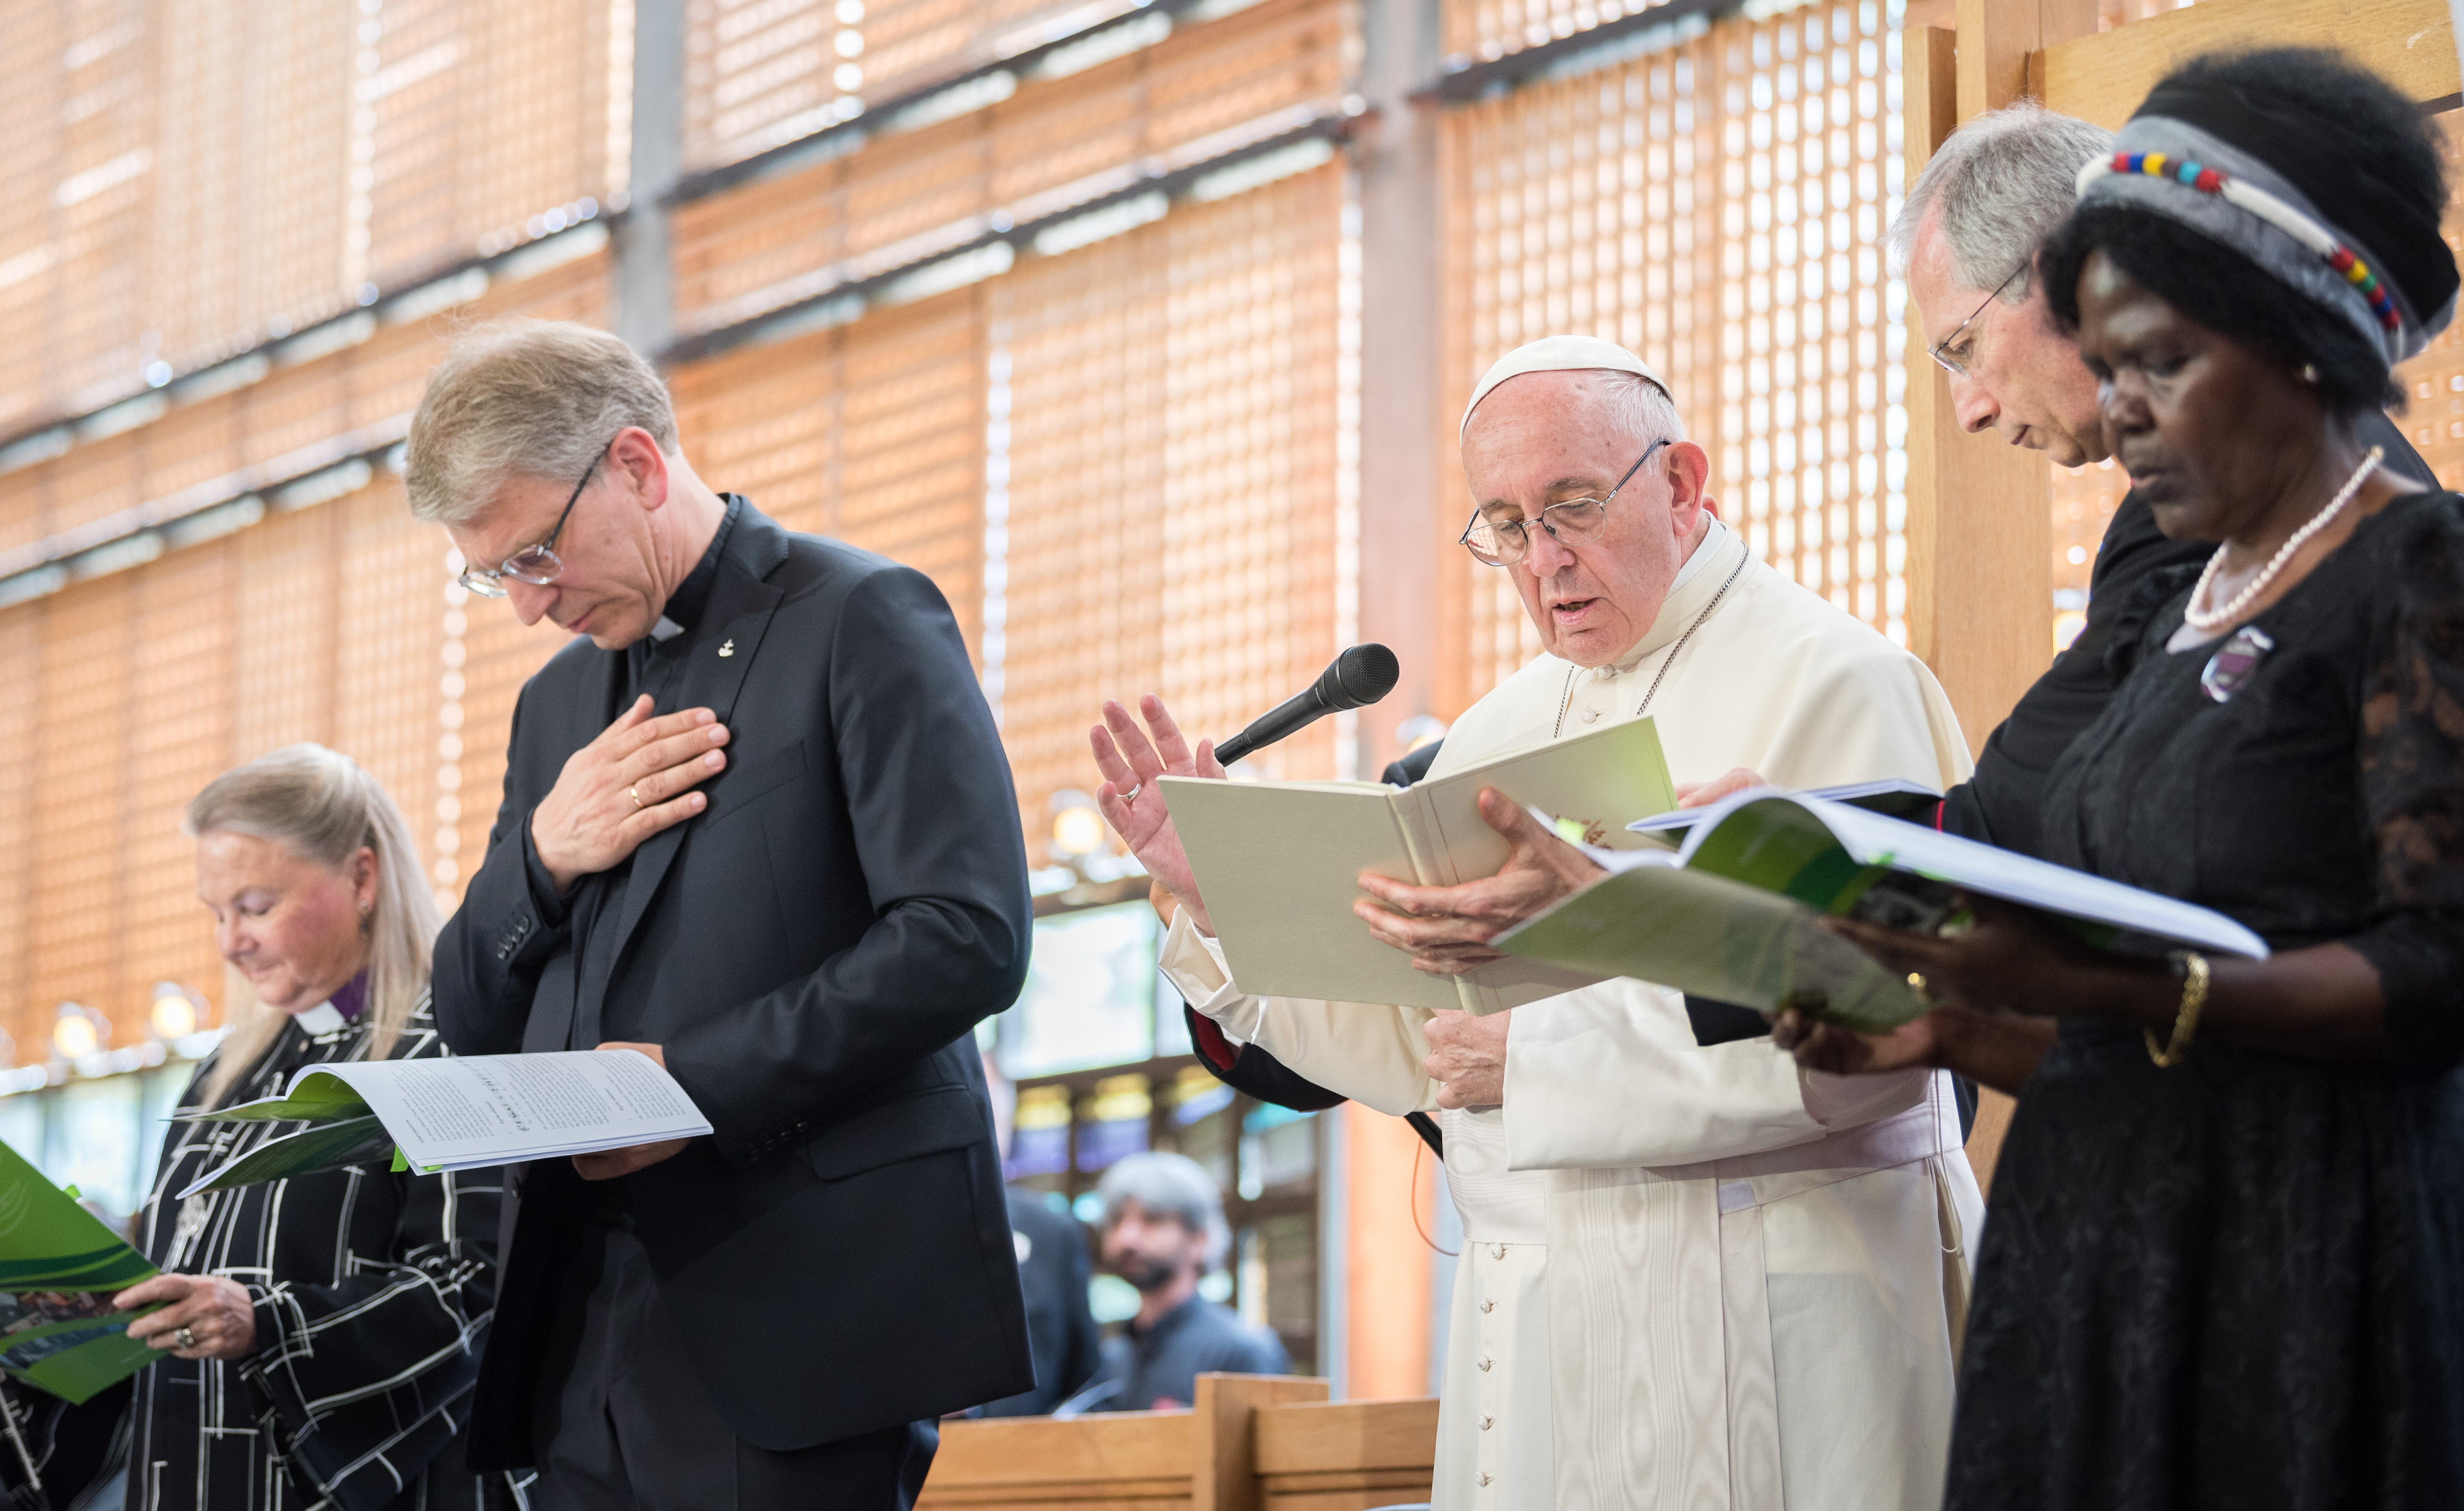 Pope Francis visits WCC